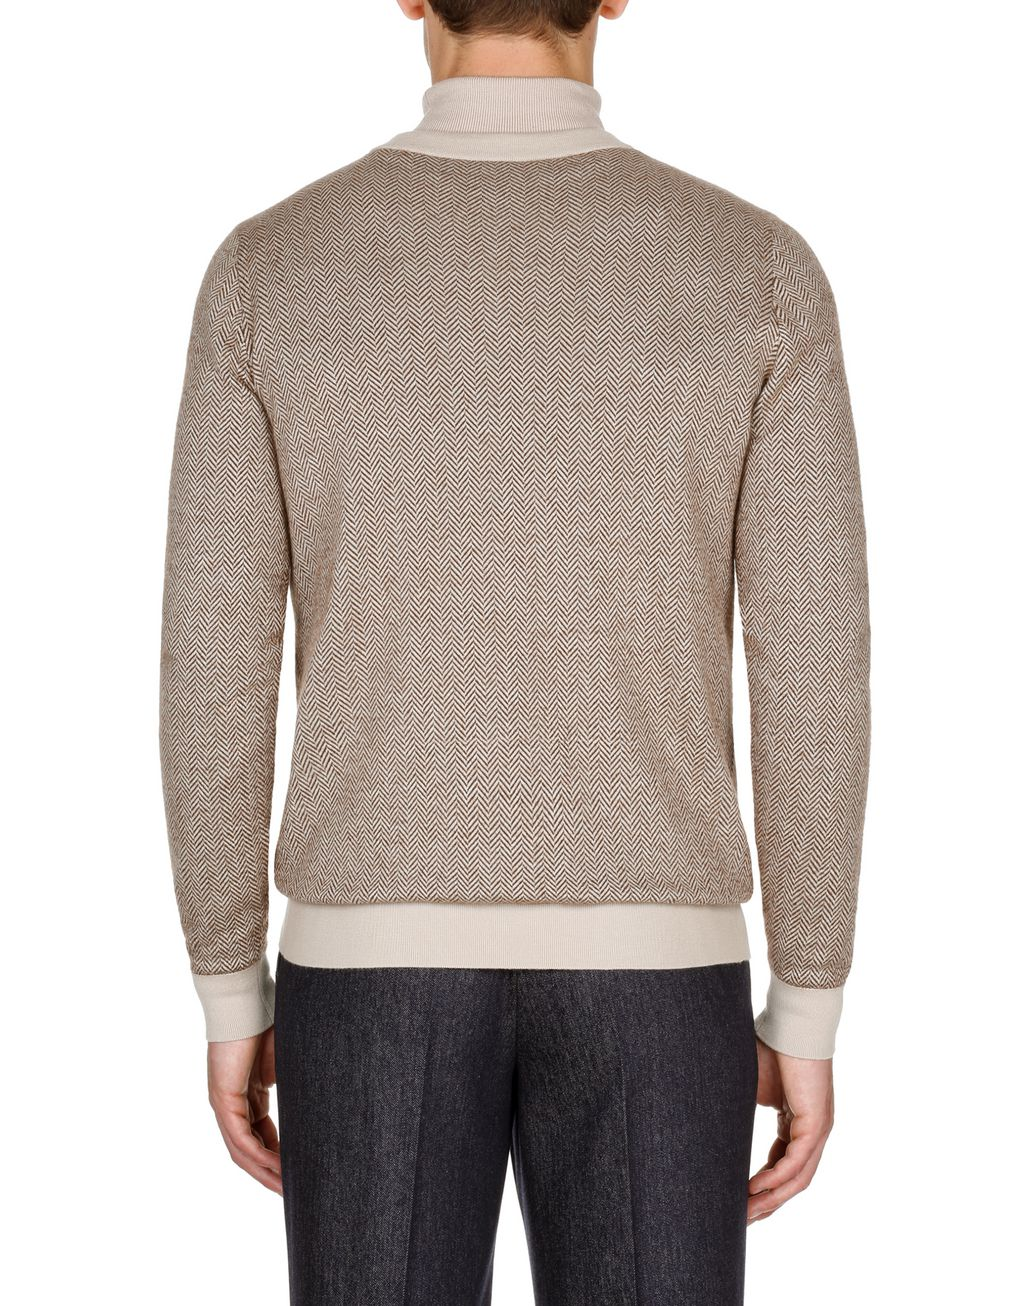 BRIONI Camel and Brown Herringbone V Neck Sweater Knitwear Man d